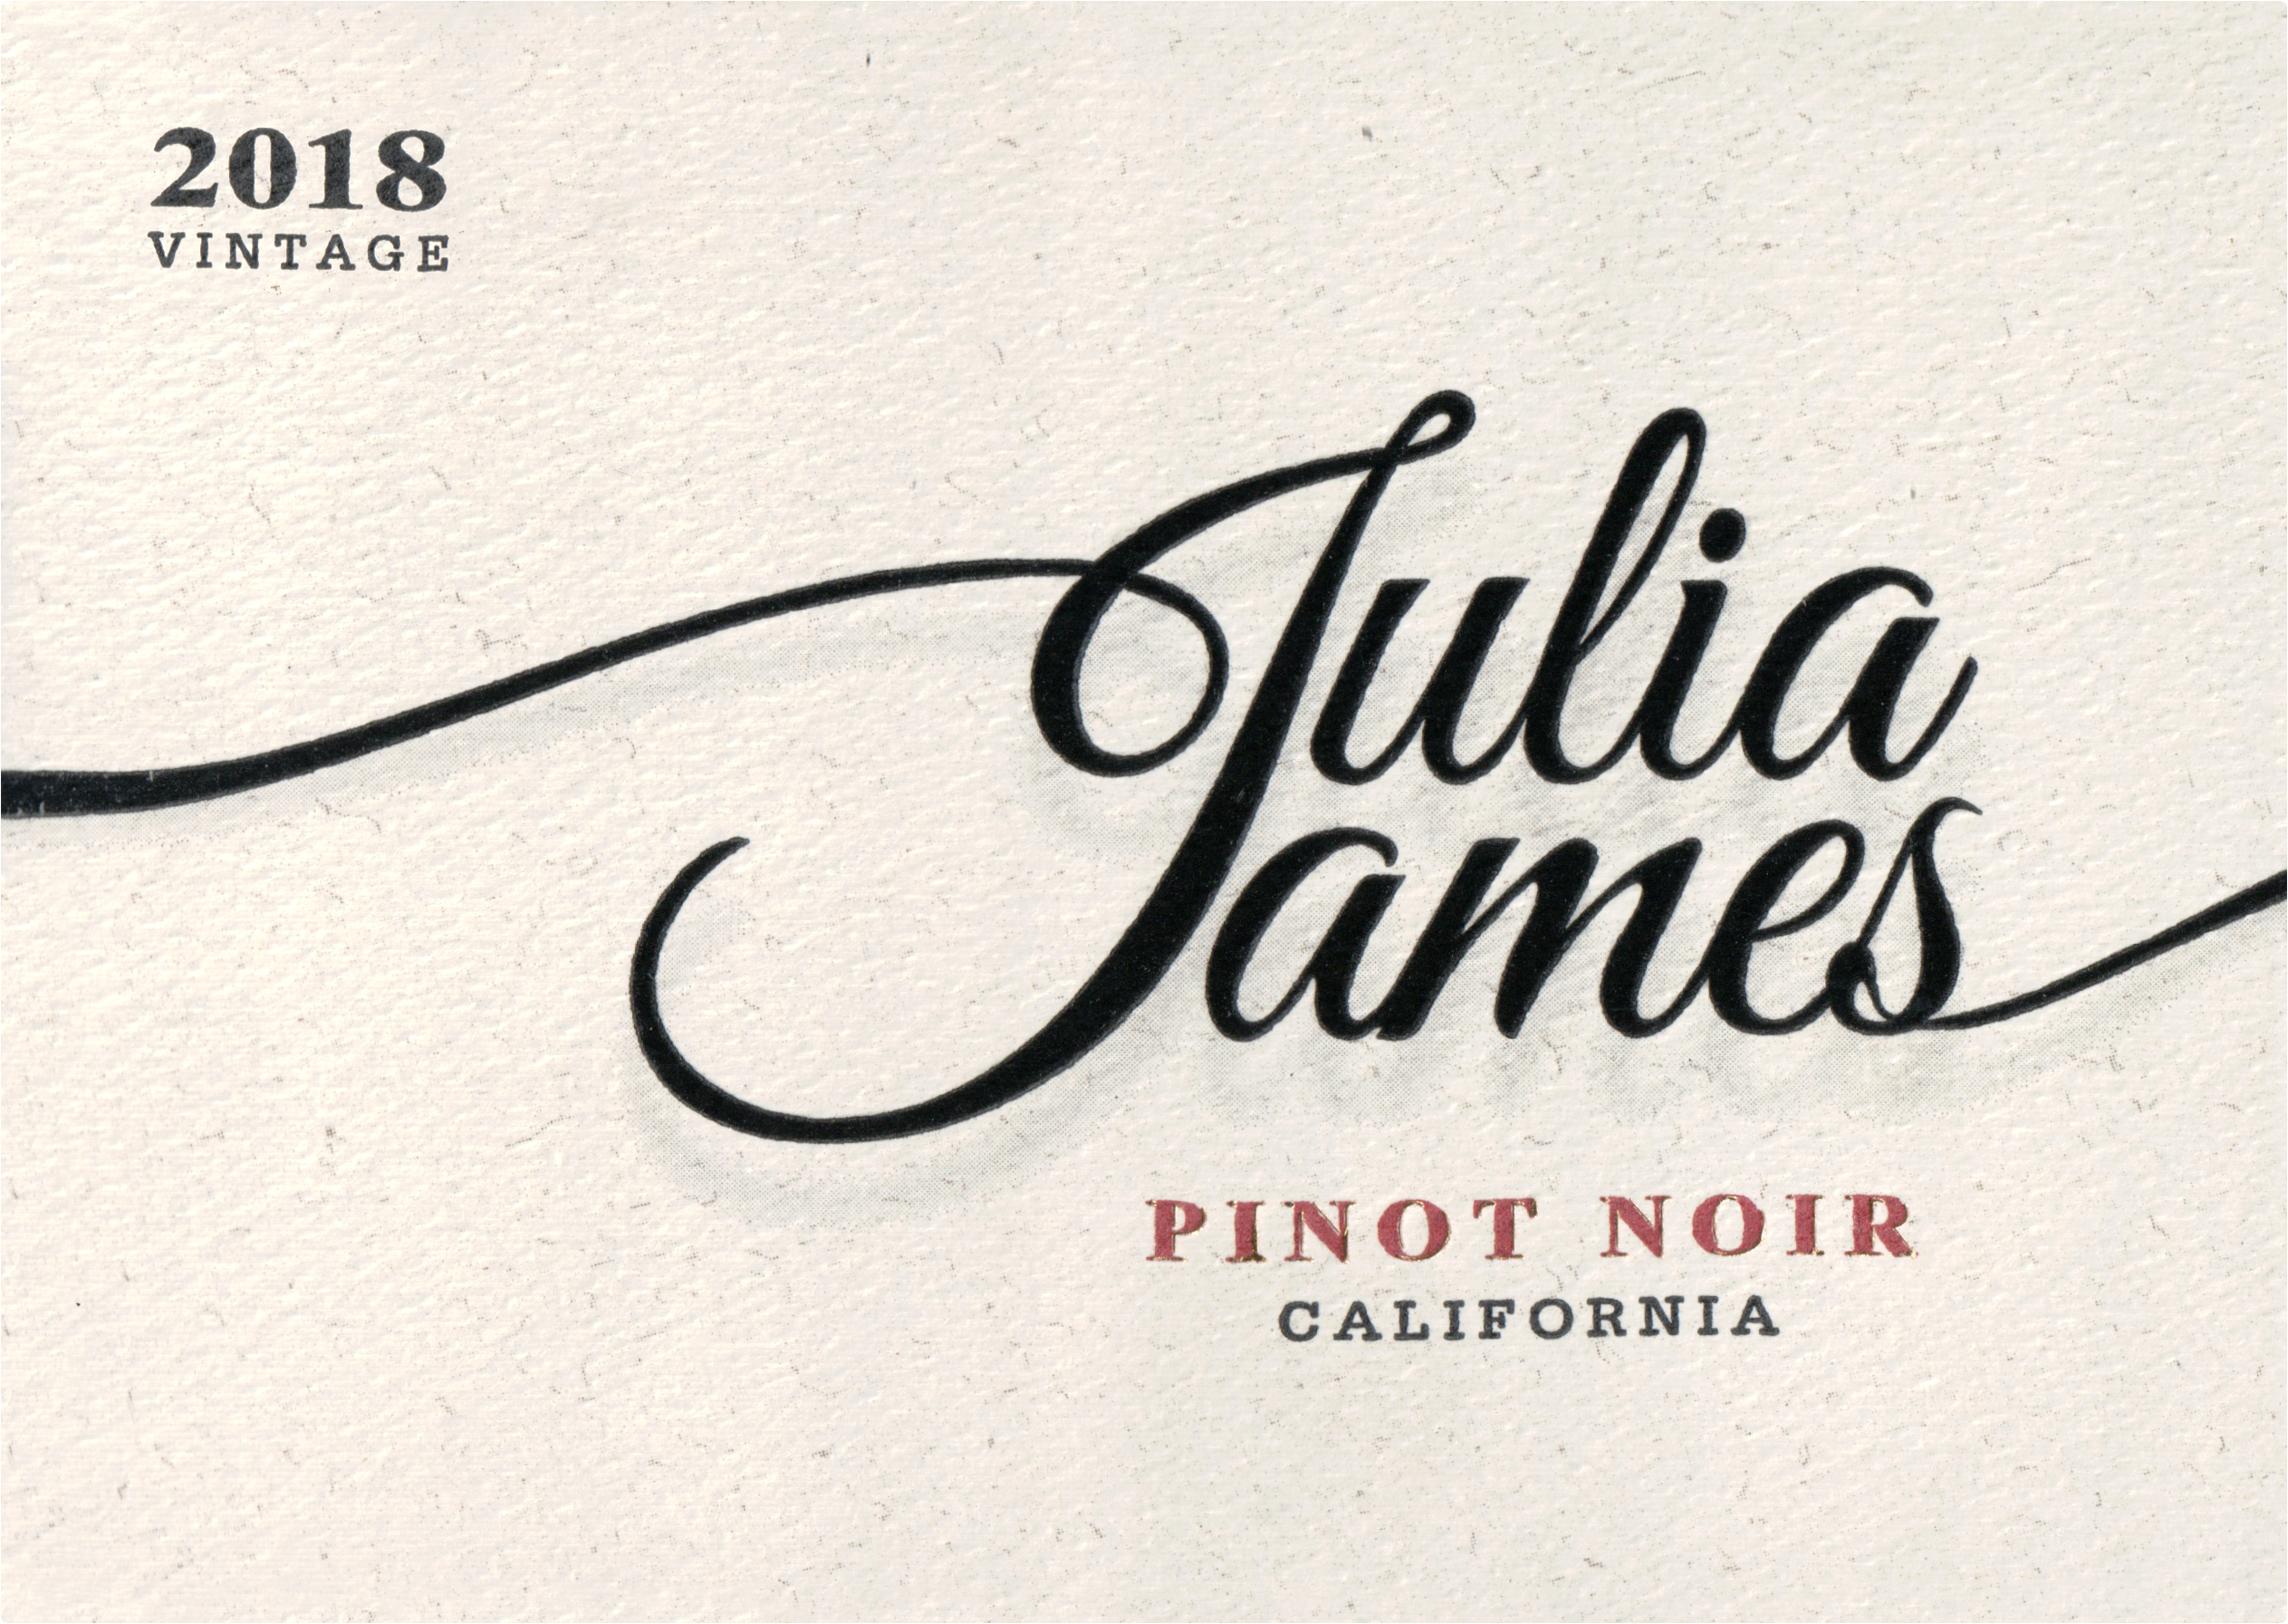 Julia James Pinot Noir 2018